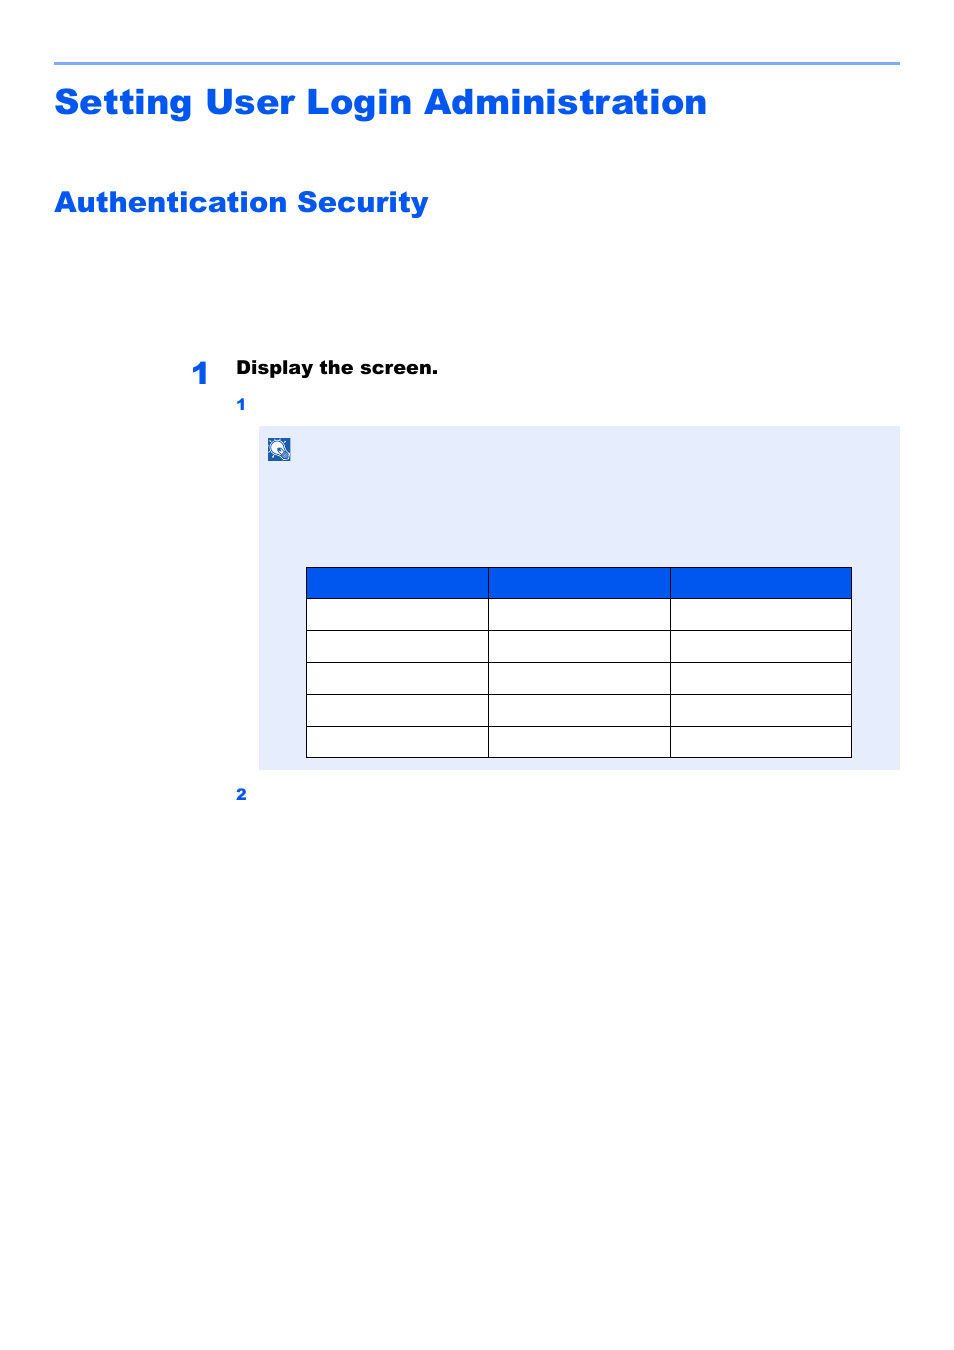 Setting user login administration, Authentication security, Setting